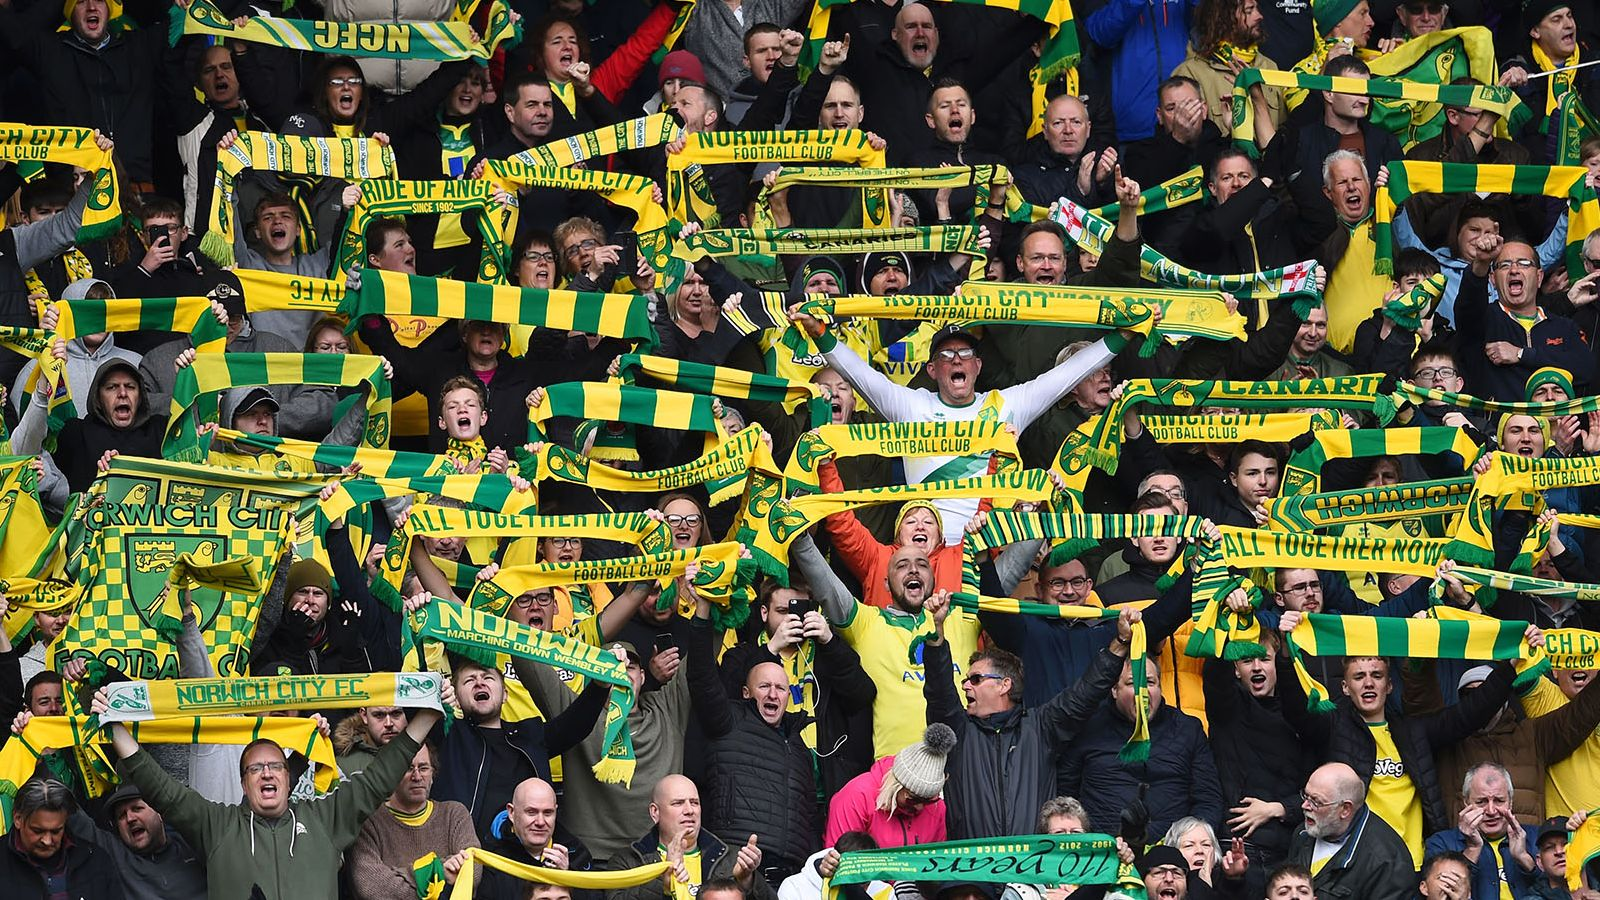 25-off-scarves-as-supporters-urged-to-create-a-sea-of-yellow-and-green-for-watford-match